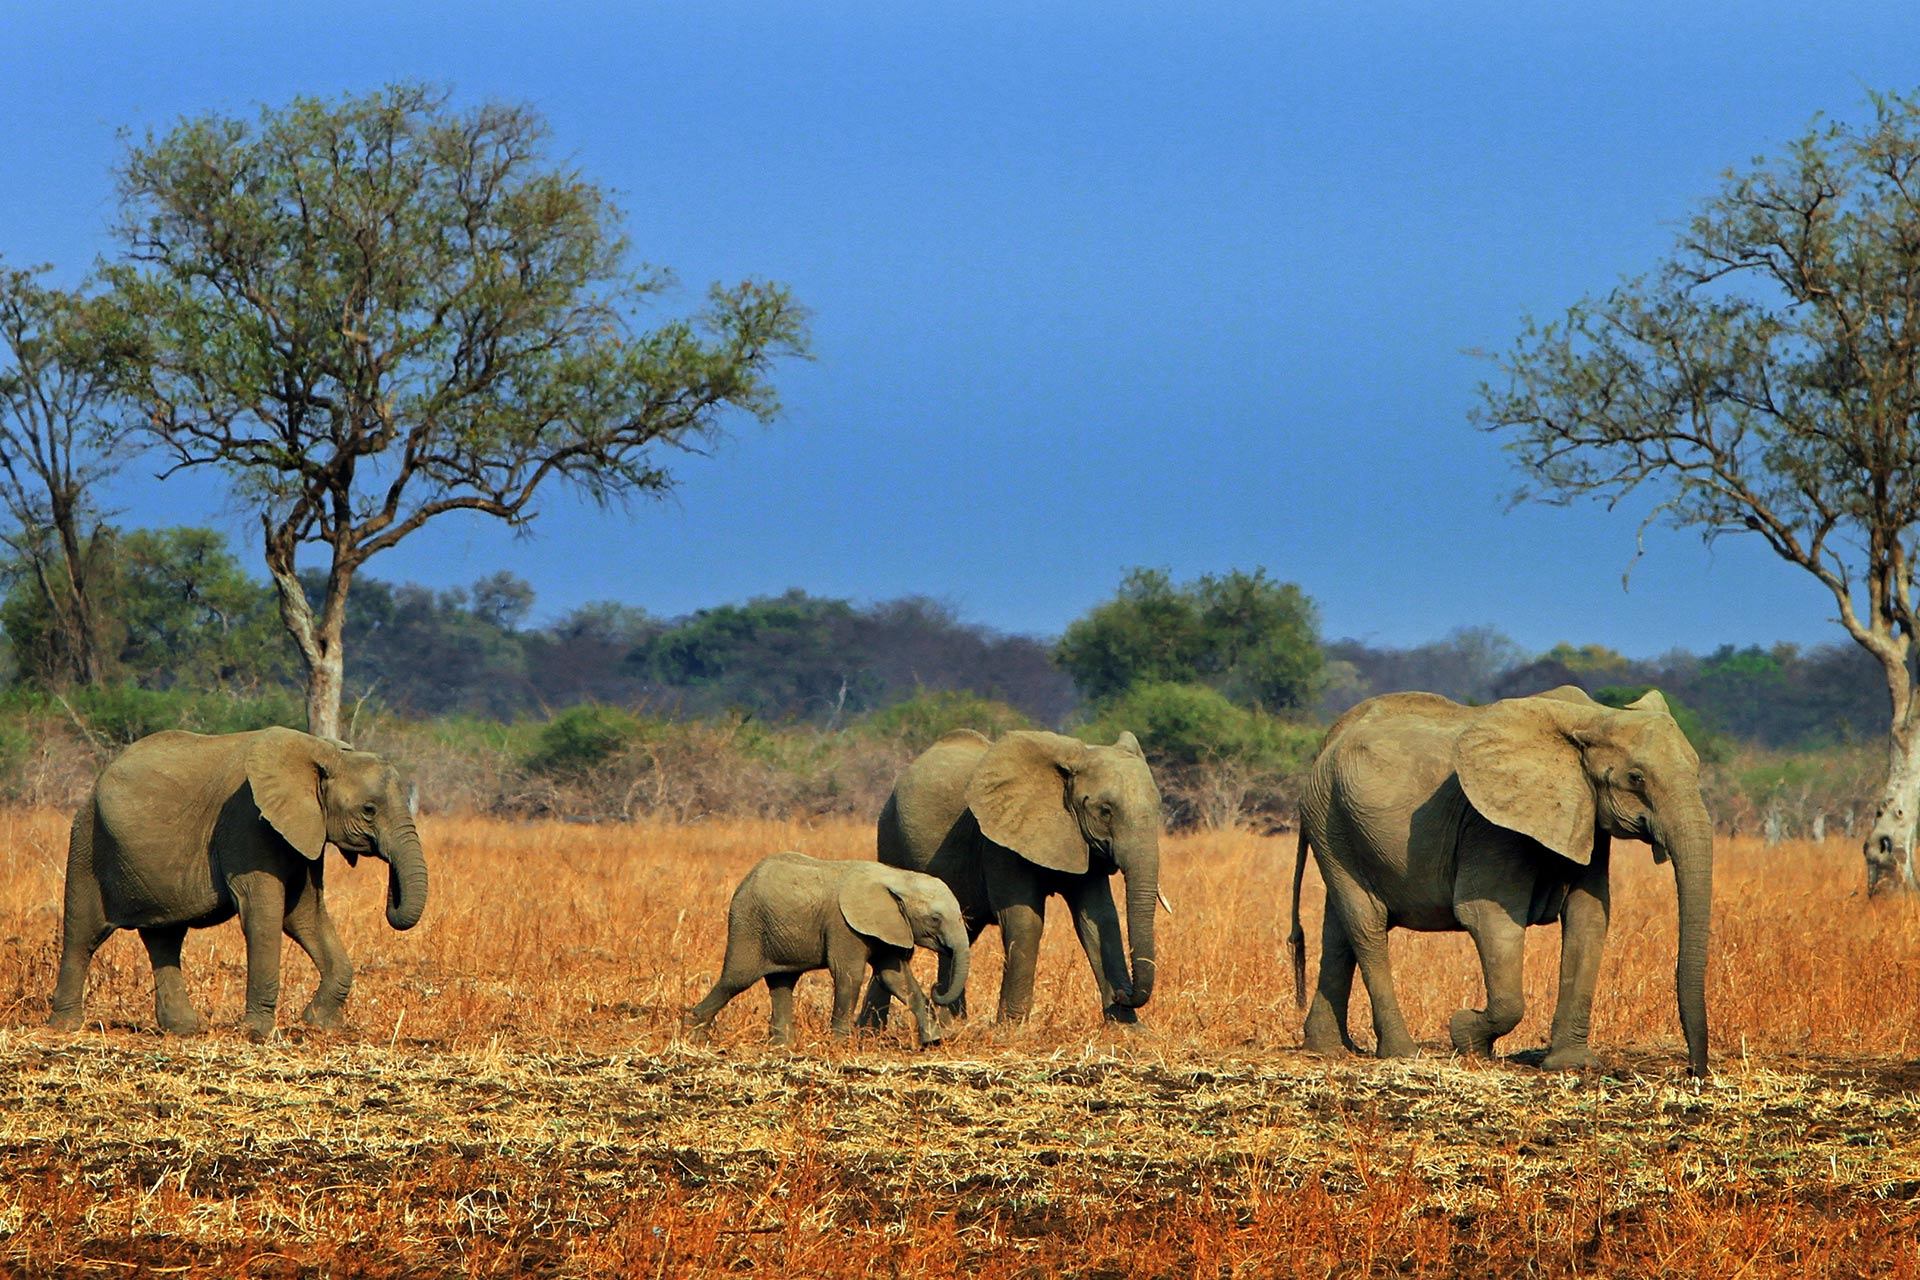 South Luangwa National Park in Zambia